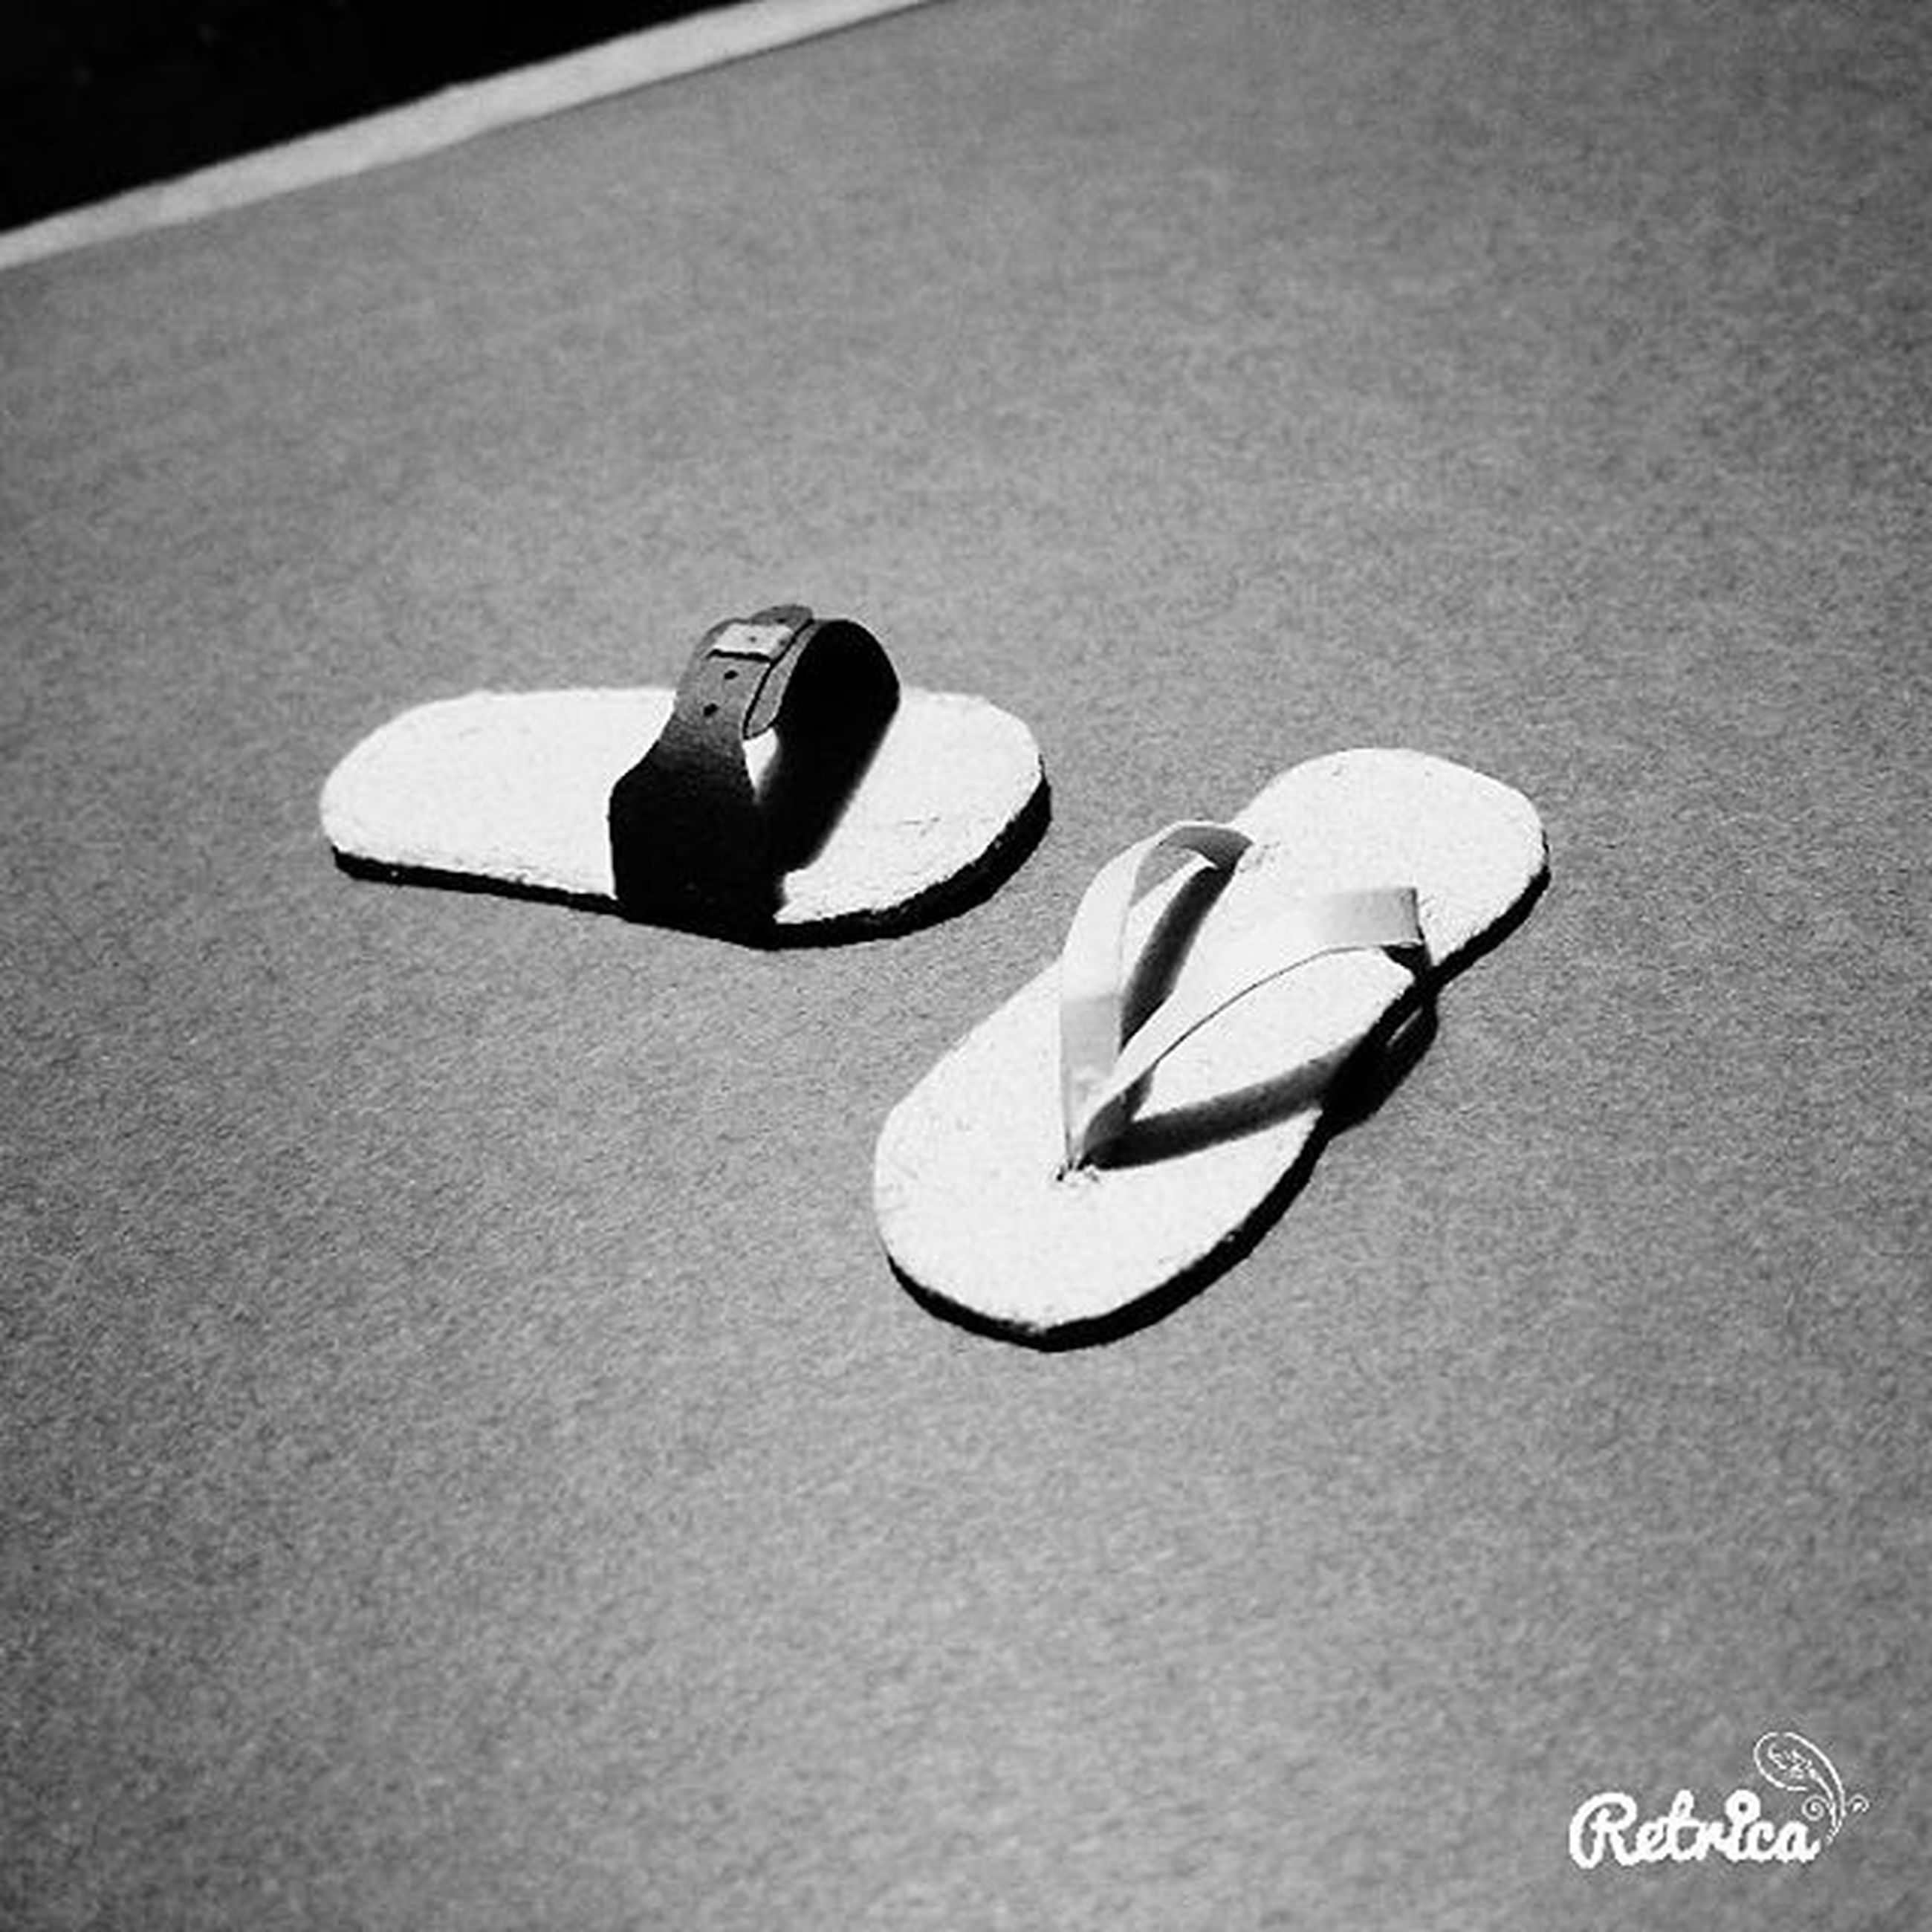 high angle view, shoe, still life, footwear, pair, close-up, indoors, shadow, single object, street, communication, day, two objects, no people, directly above, sunlight, absence, text, low section, black color